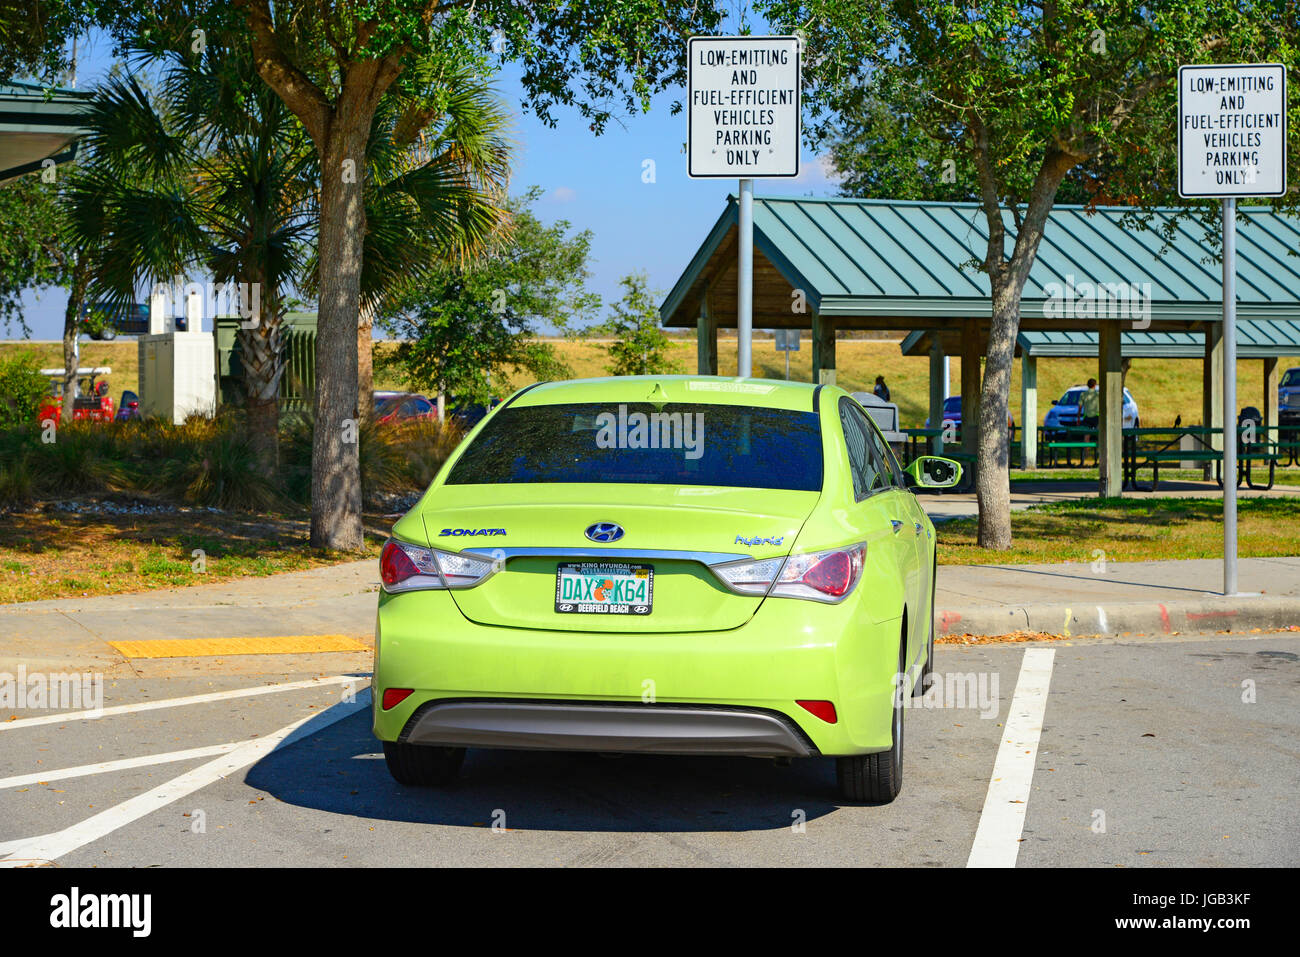 Low emitting and fuel efficient vehicles parking area - Stock Image